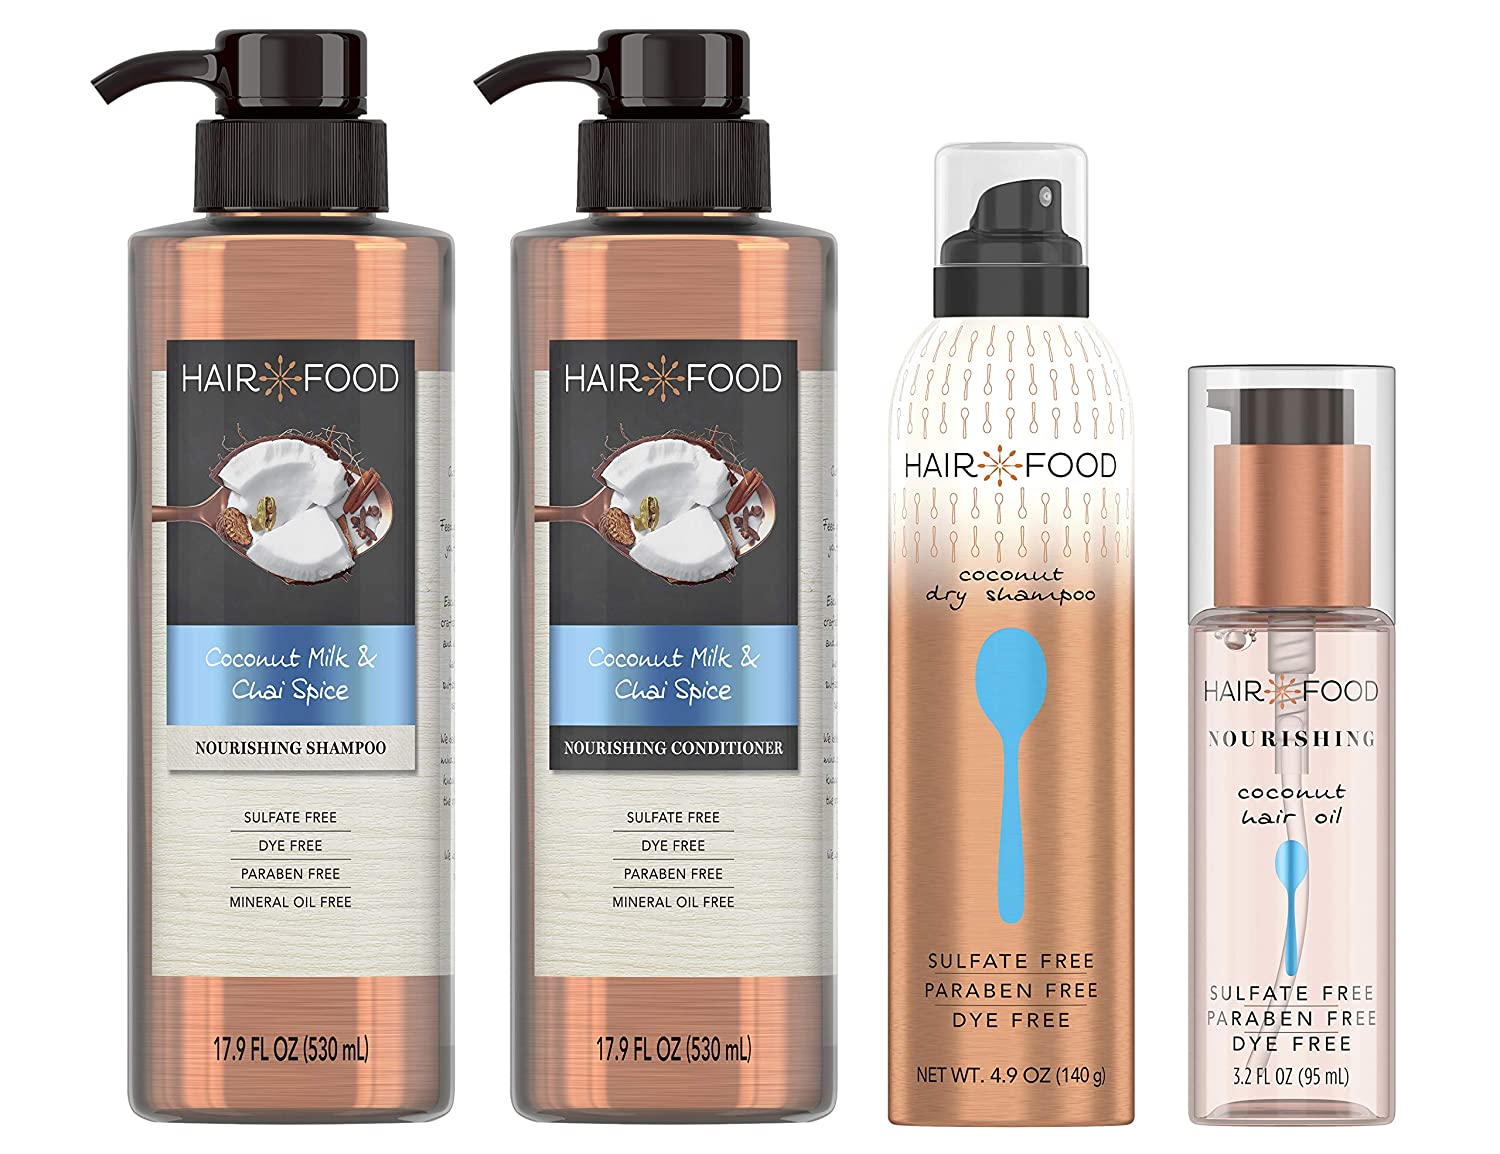 Hair Food Sulfate Free Nourishing Shampoo and Conditioner with Hair Oil + Dry Shampoo, Coconut Milk & Chai Spice, Dye Free, Bundle